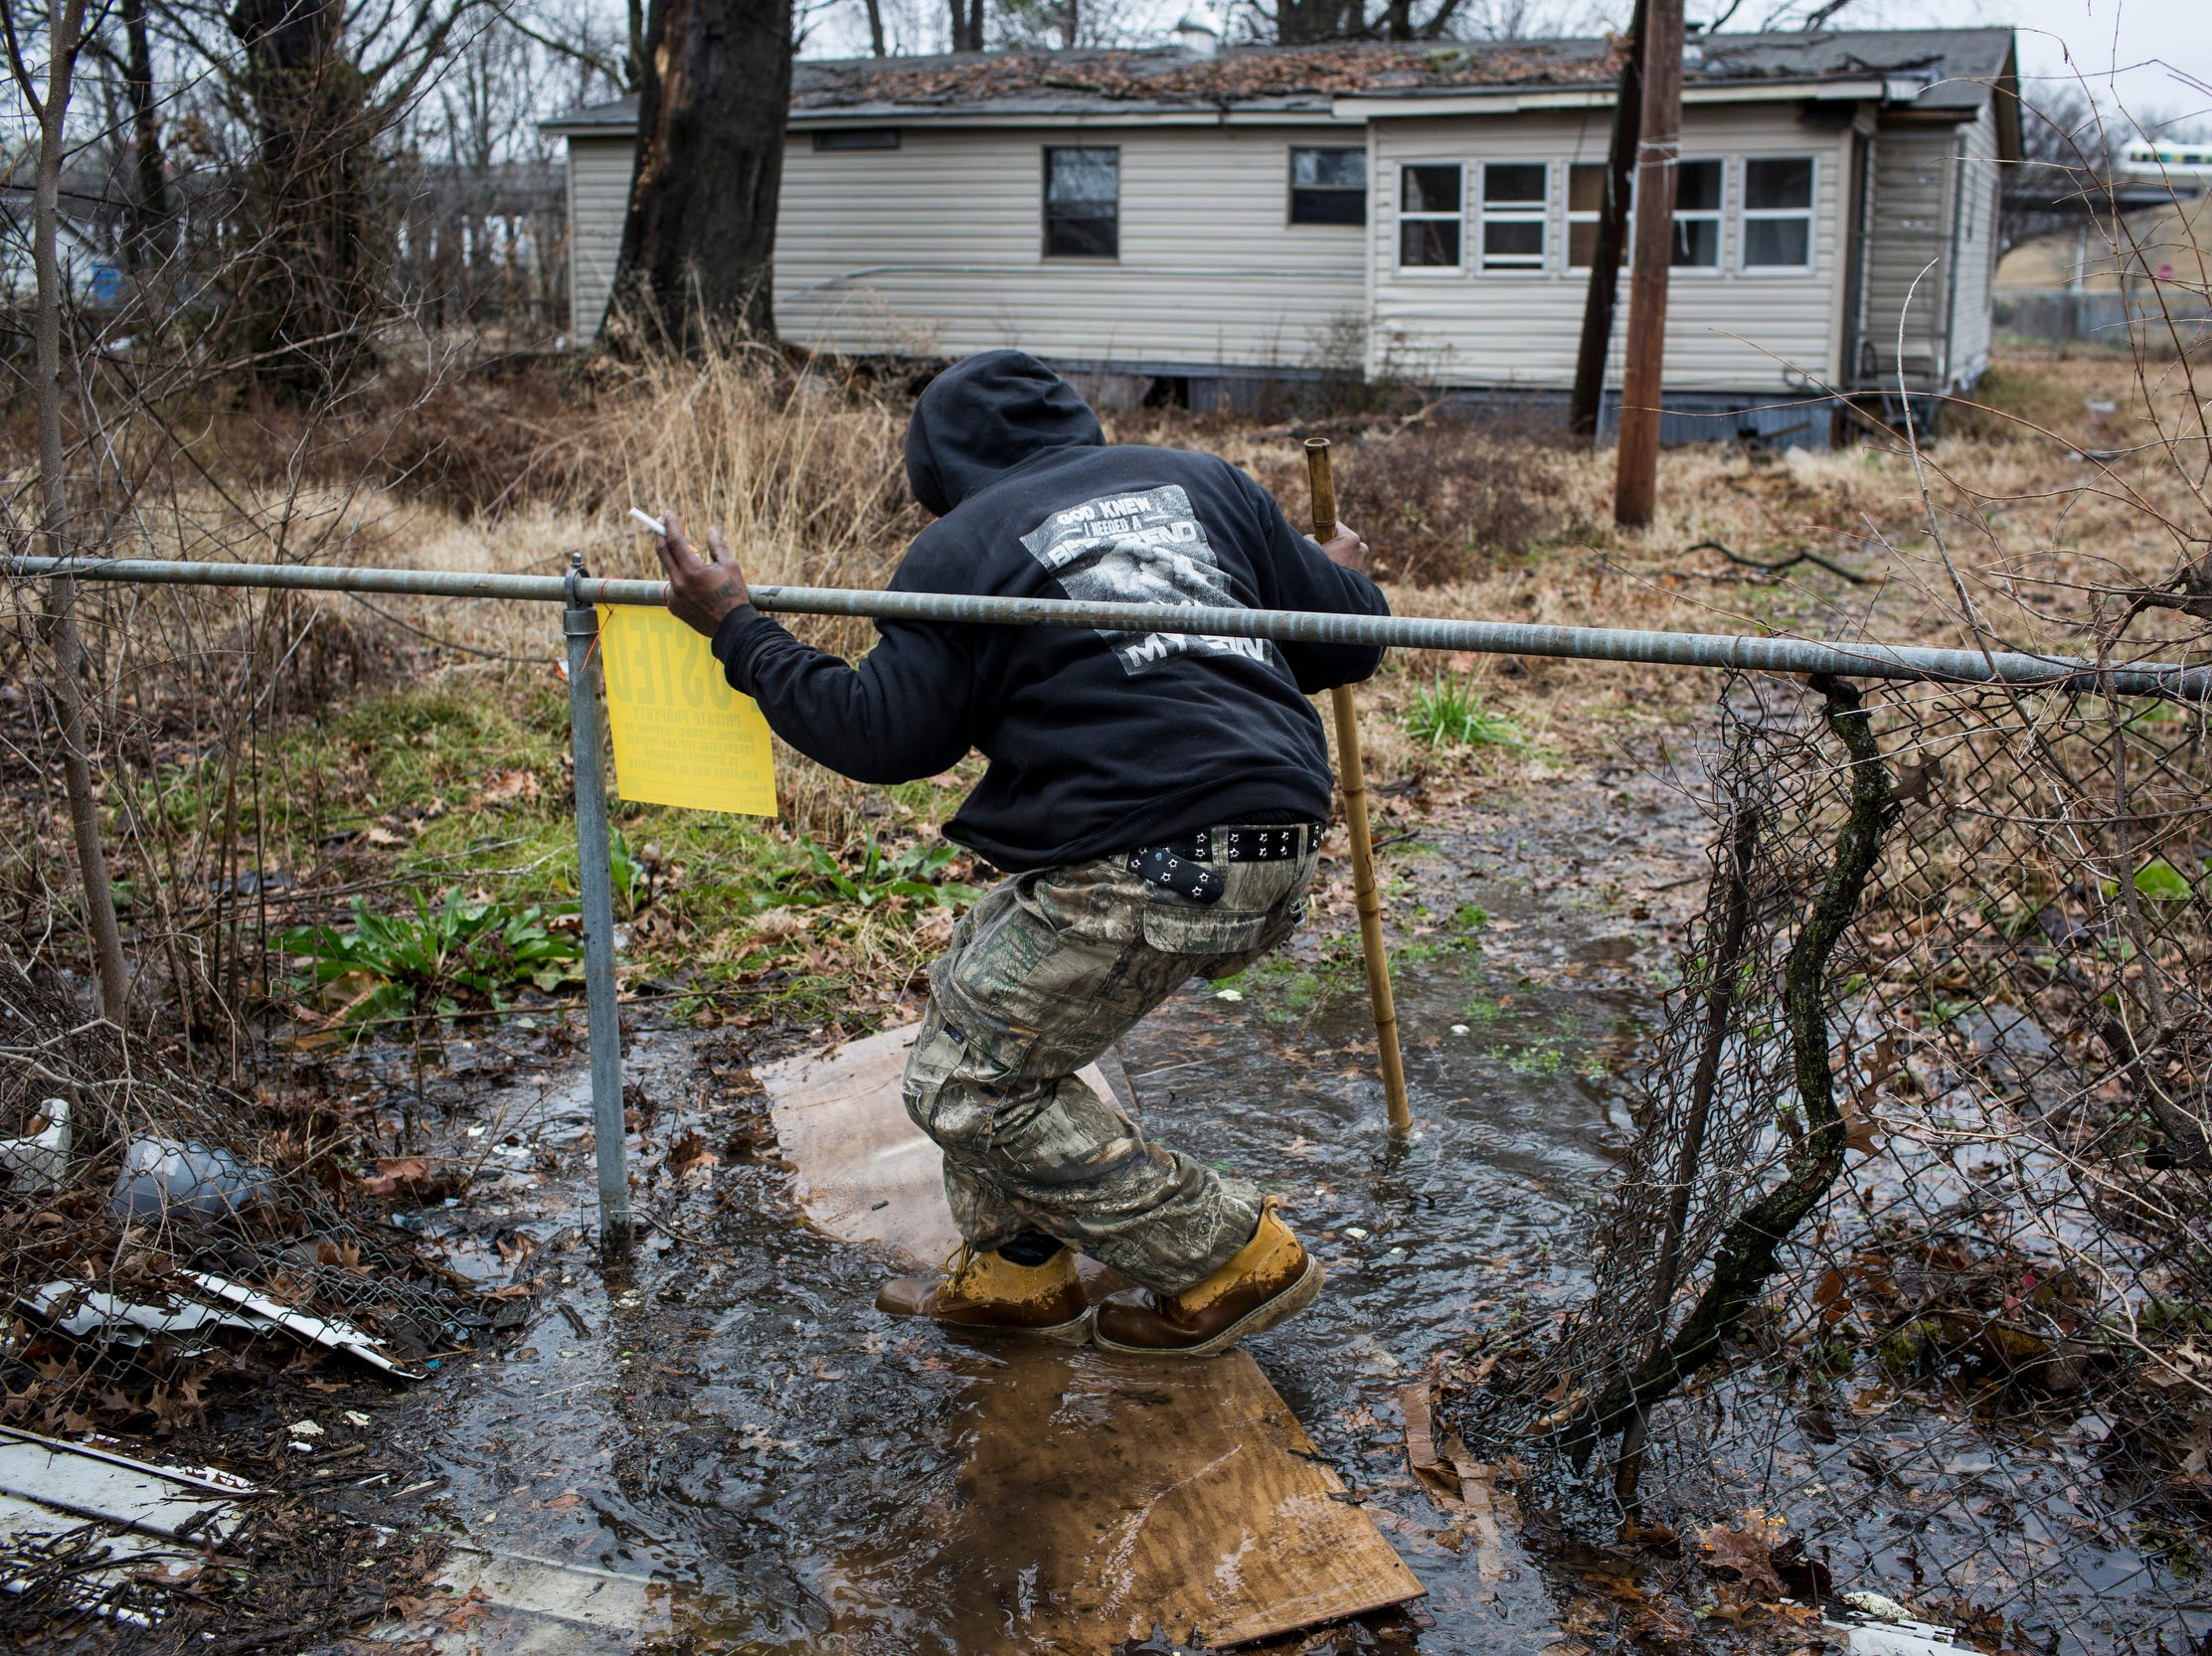 January 23, 2019 - Marcus Moore, a resident of Lakeshore in Marion, Arkansas, traverses a discarded door as he heads towards a friend's home. The Arkansas Department of Environmental Quality records show that Lakeshore's approximately 3-mile sewage system has a long history of issues with stormwater inflow and sewage overflows.